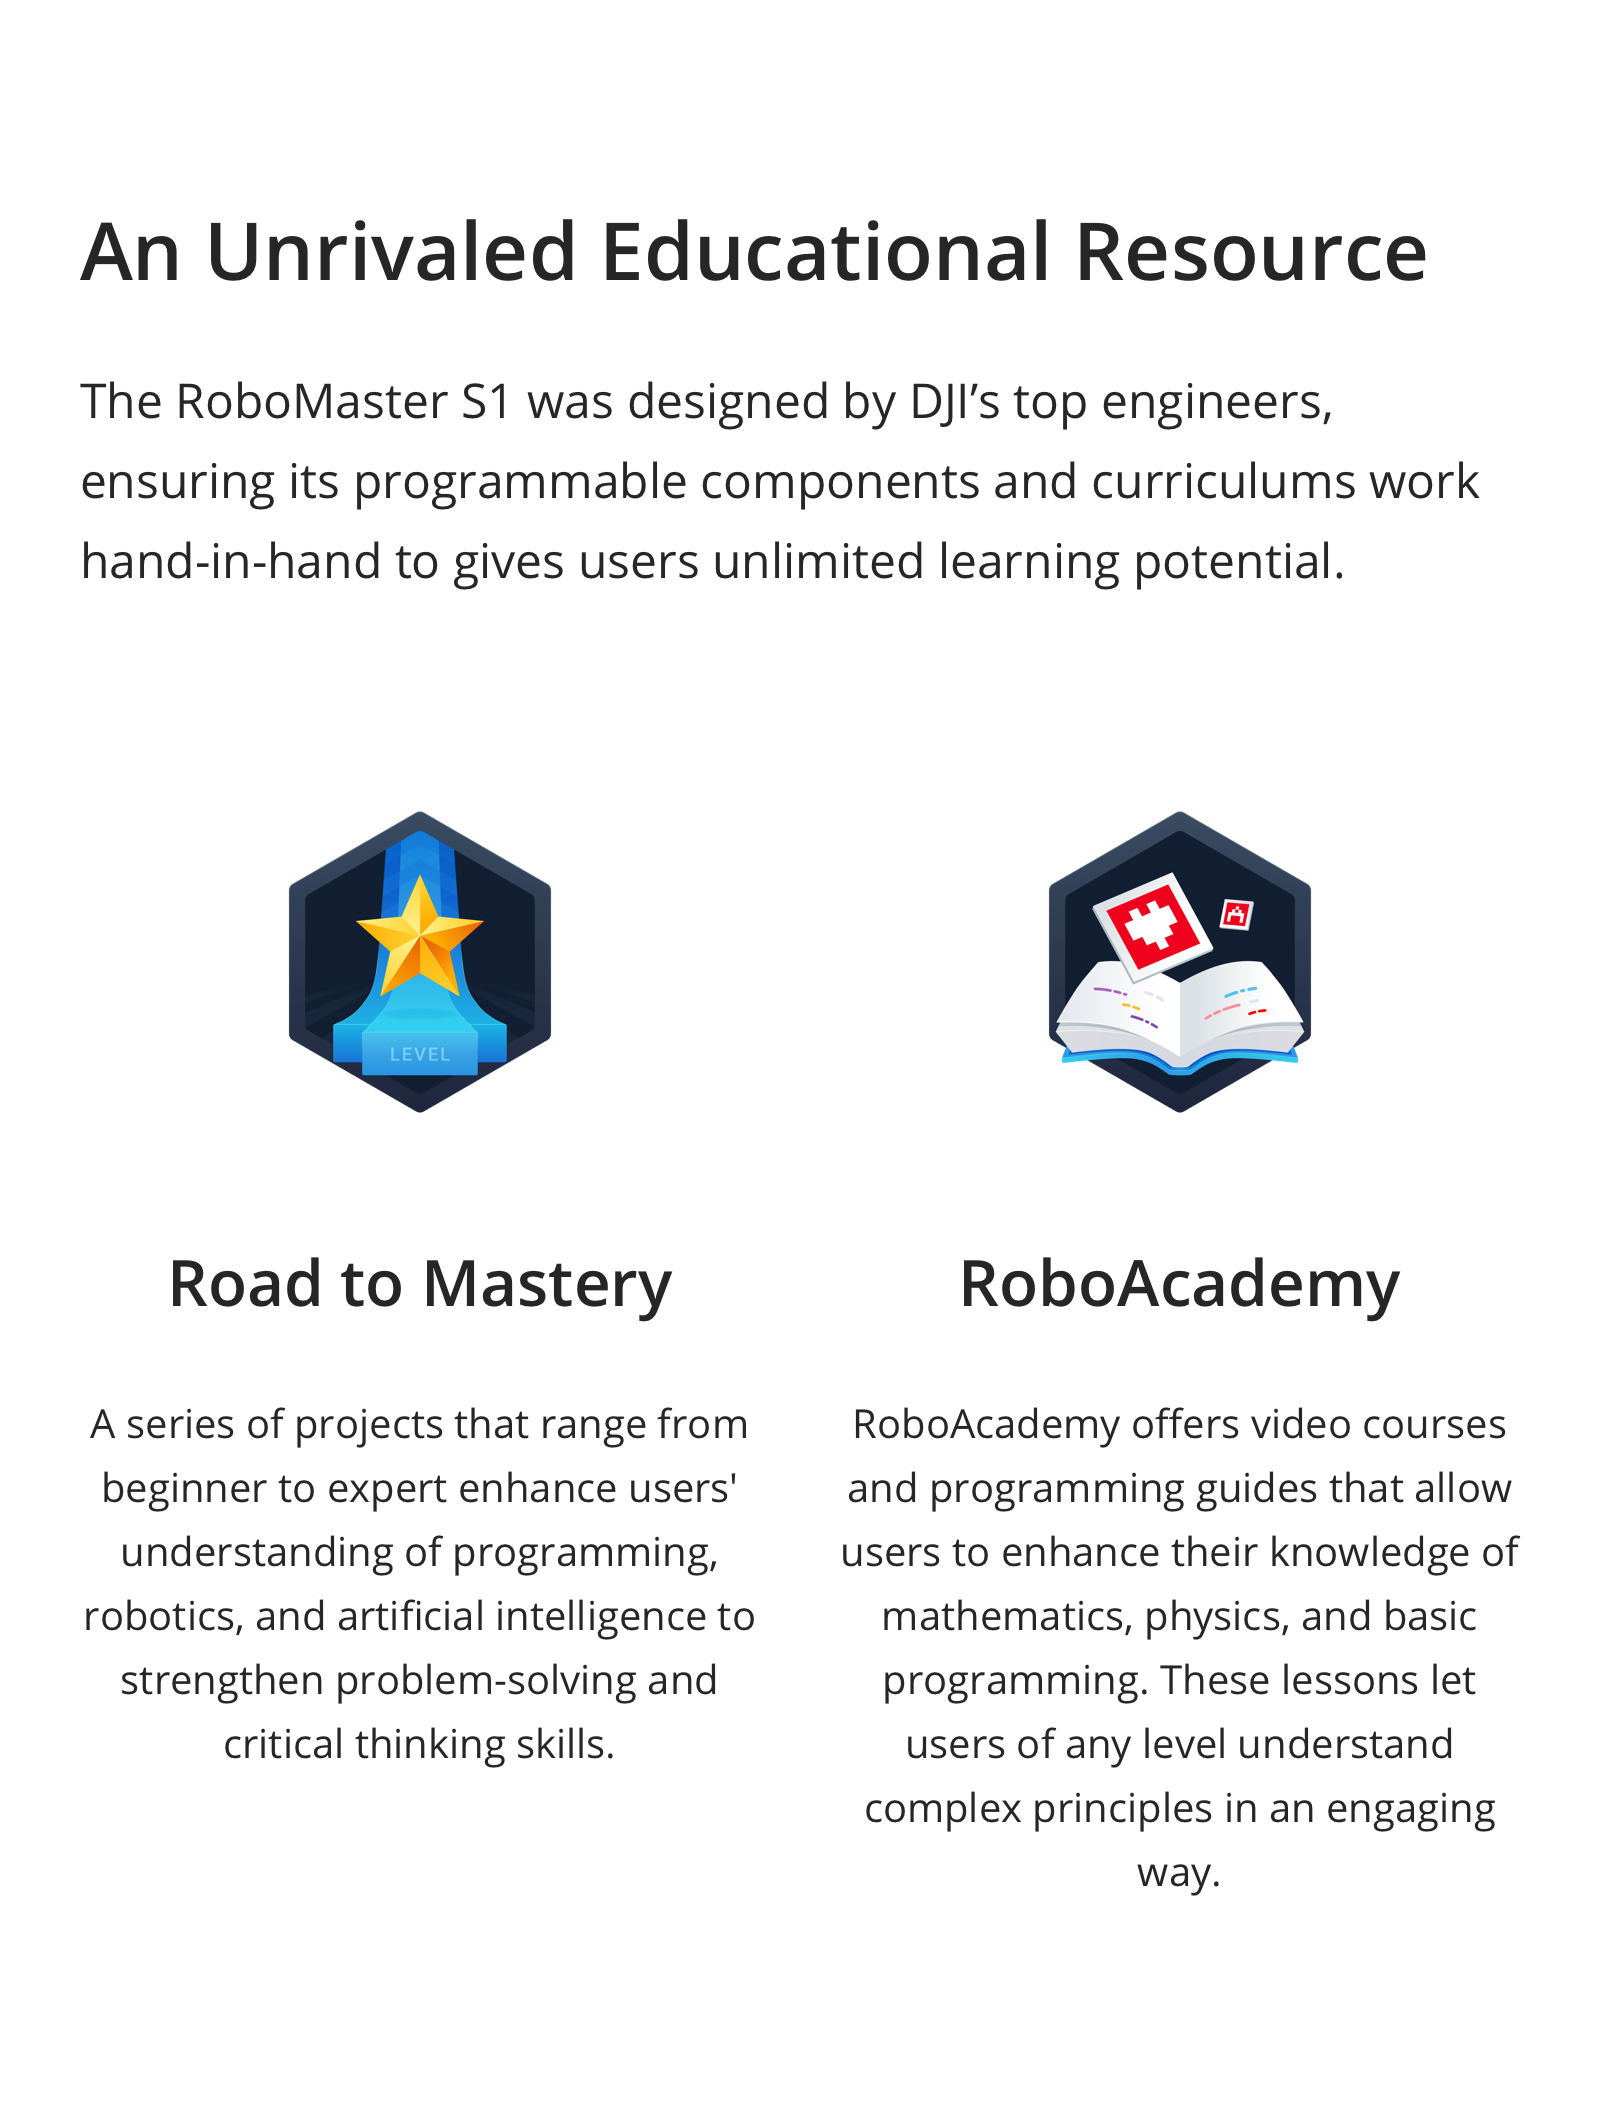 Buy DJI RoboMaster S1 Educational Robot today at DroneNerds